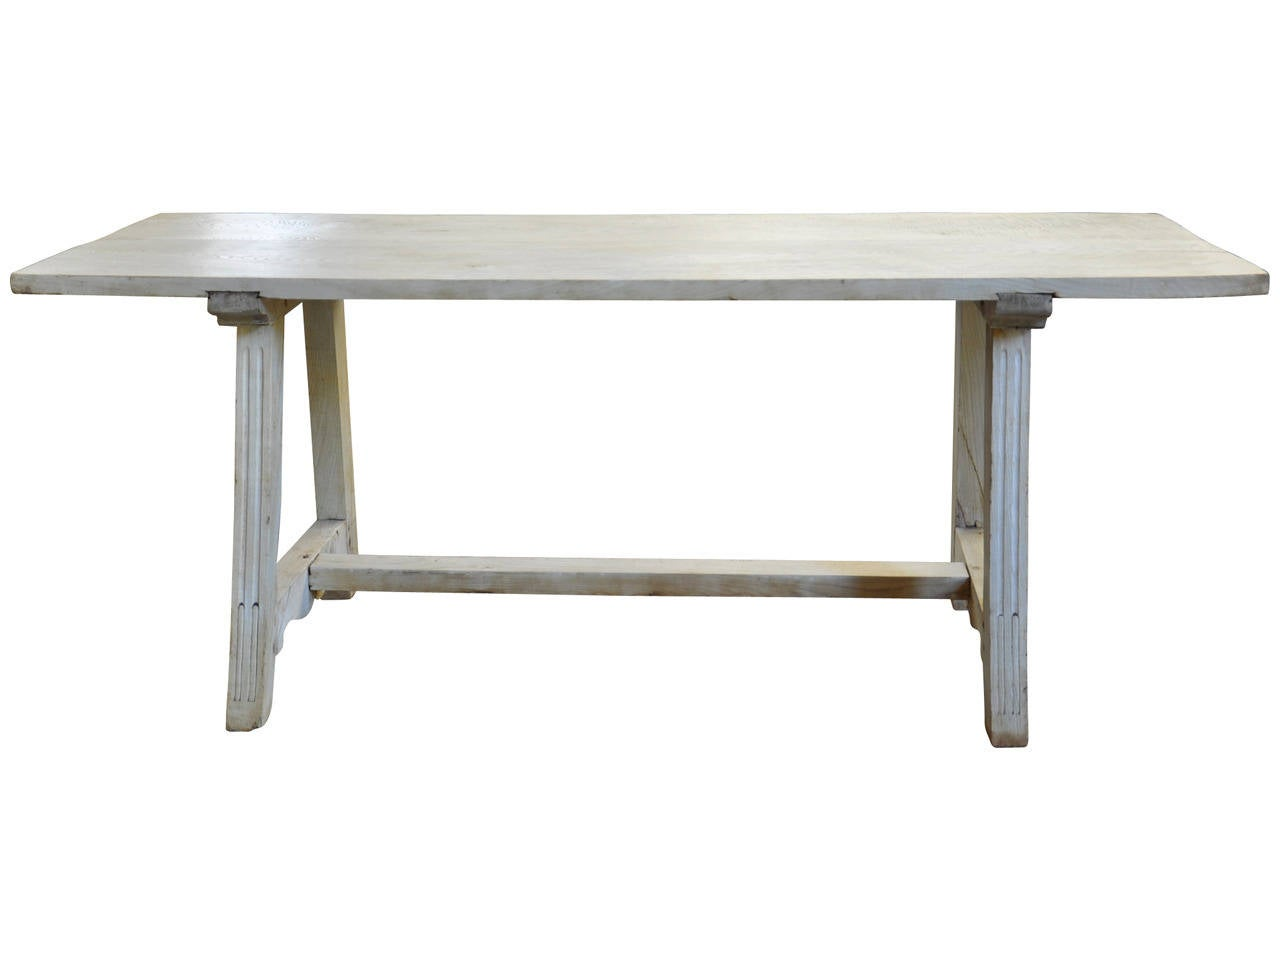 A very handsome early 19th century farm table, trestle table from Genoa, Italy. This wonderful table is constructed from bleached chestnut and is very sturdy and sound. A wonderful dining table or large writing table that can well used and loved.